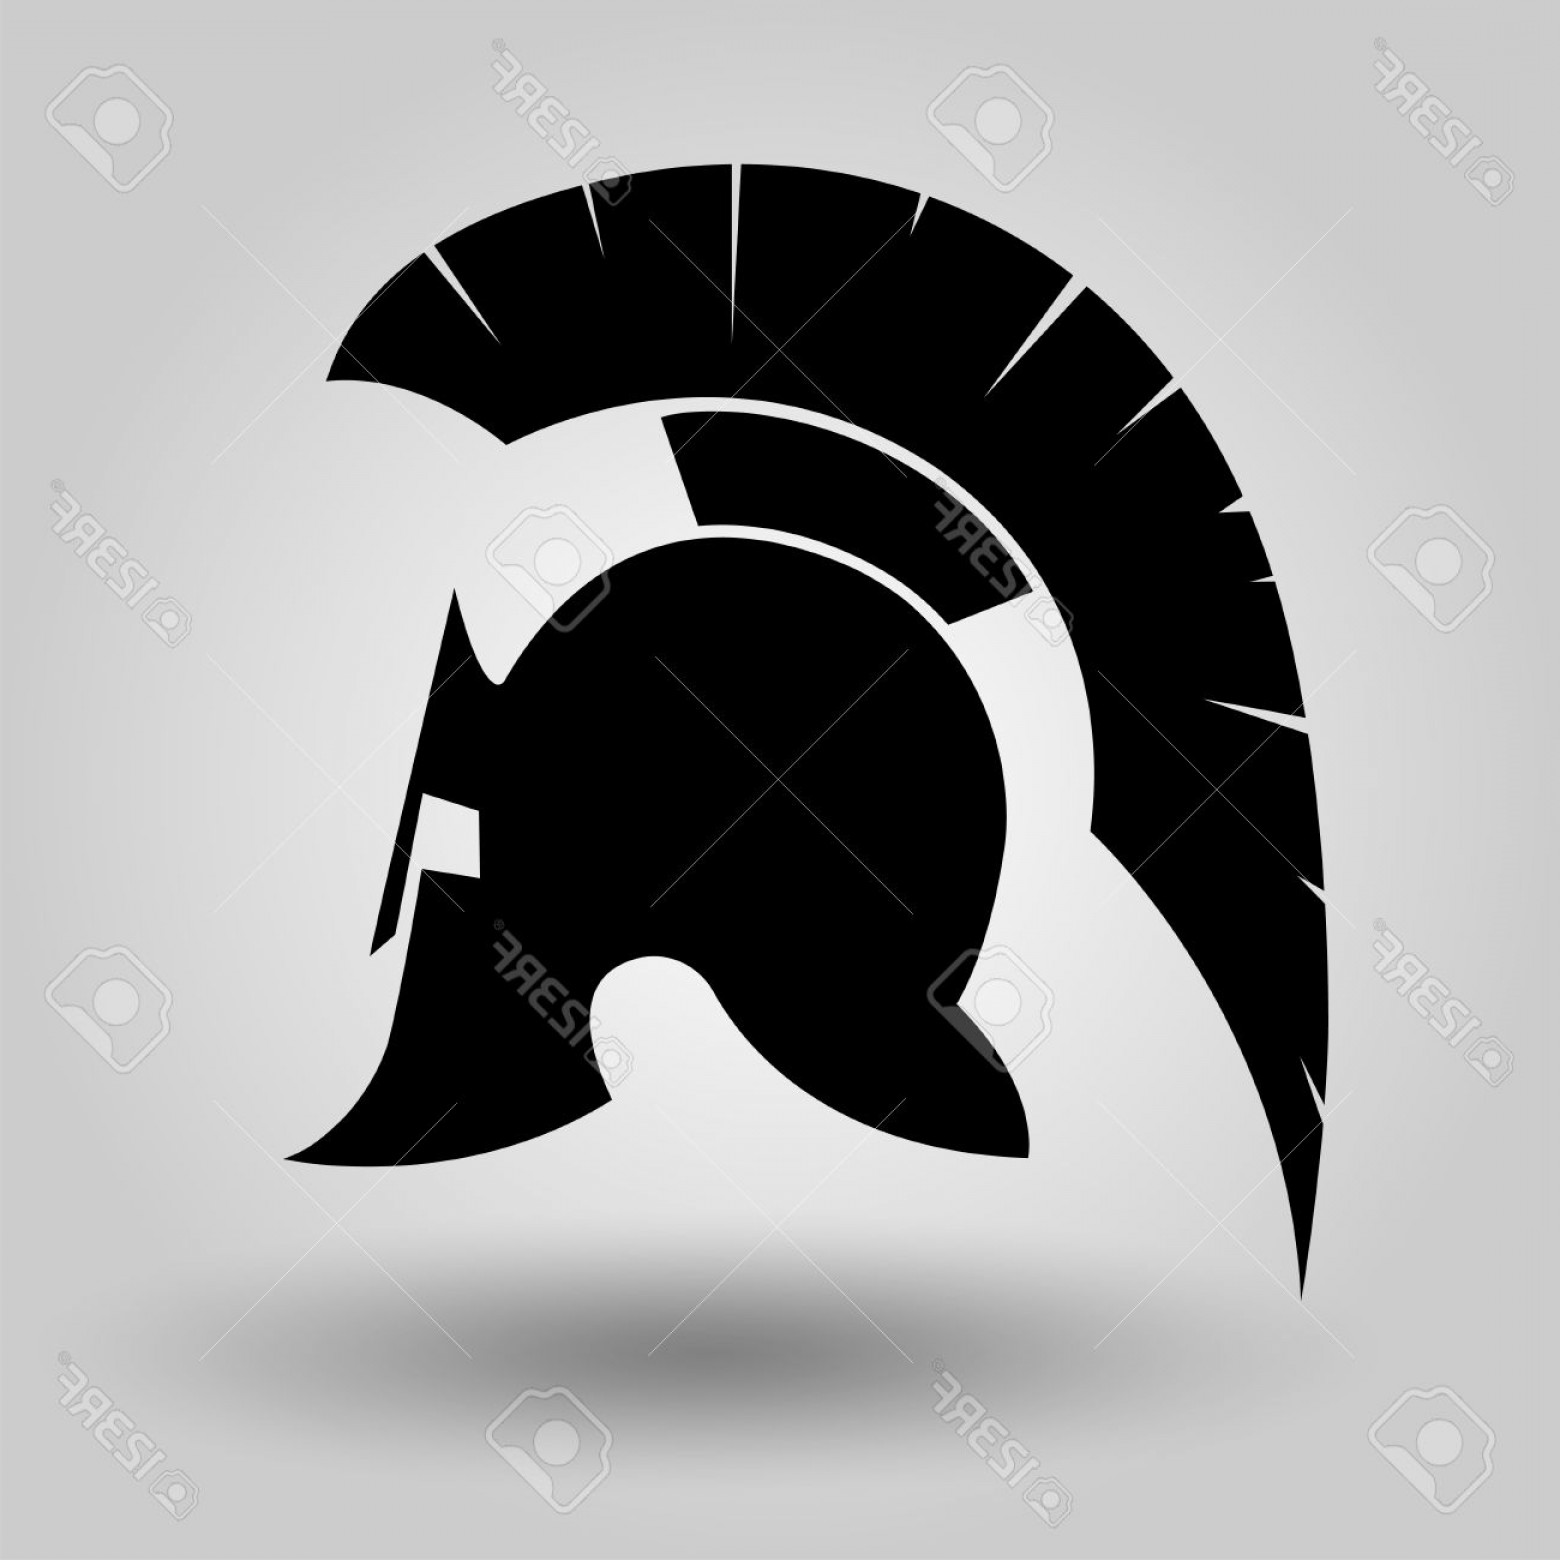 1560x1560 Collection Of Army Helmet Silhouette Download Them And Try To Solve